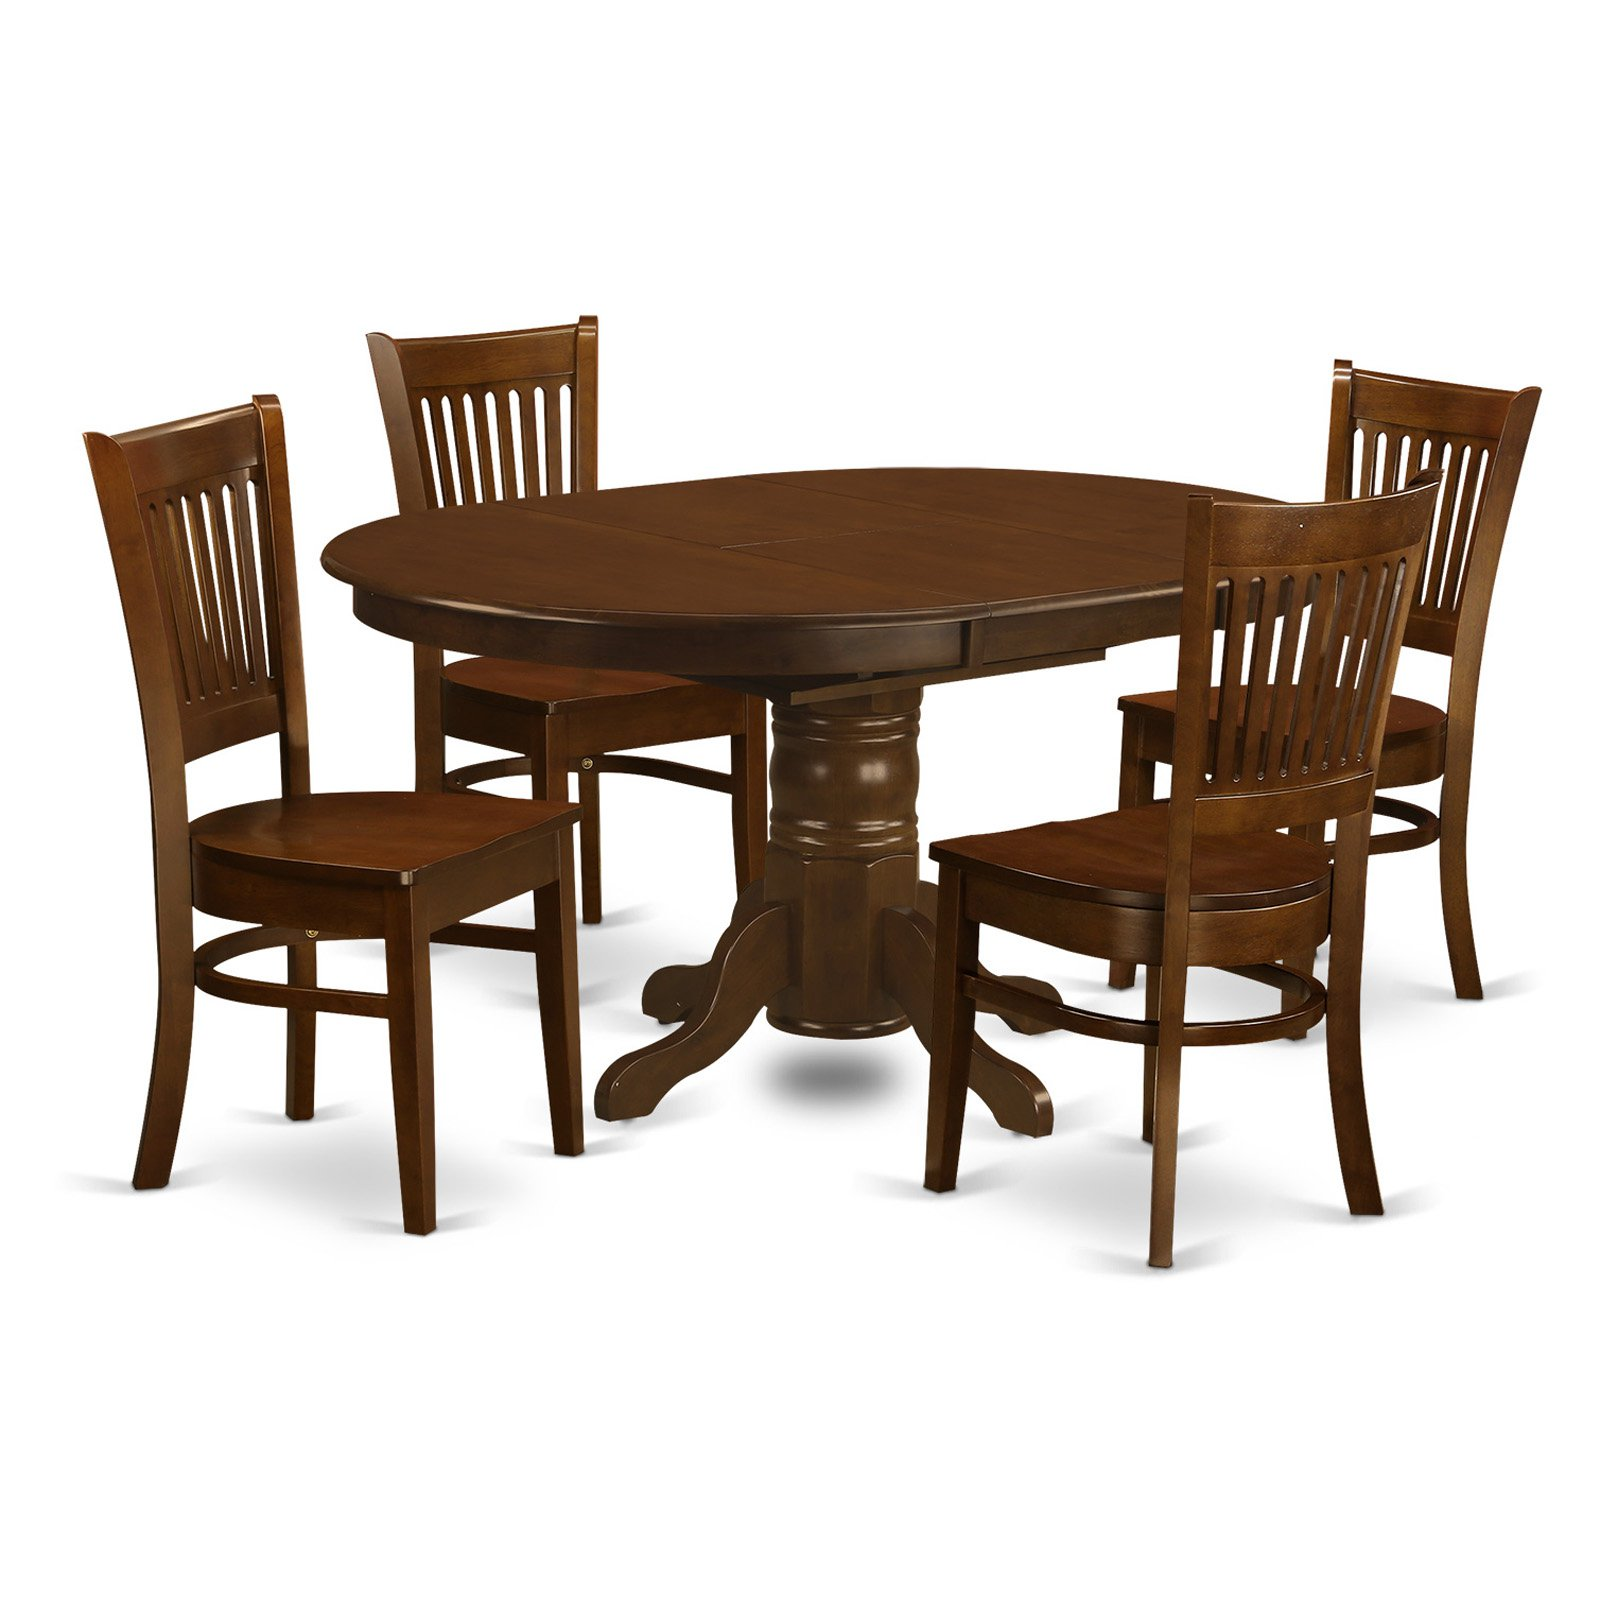 East West Furniture Kenley 5 Piece Hepplewhite Modern Dining Table Set